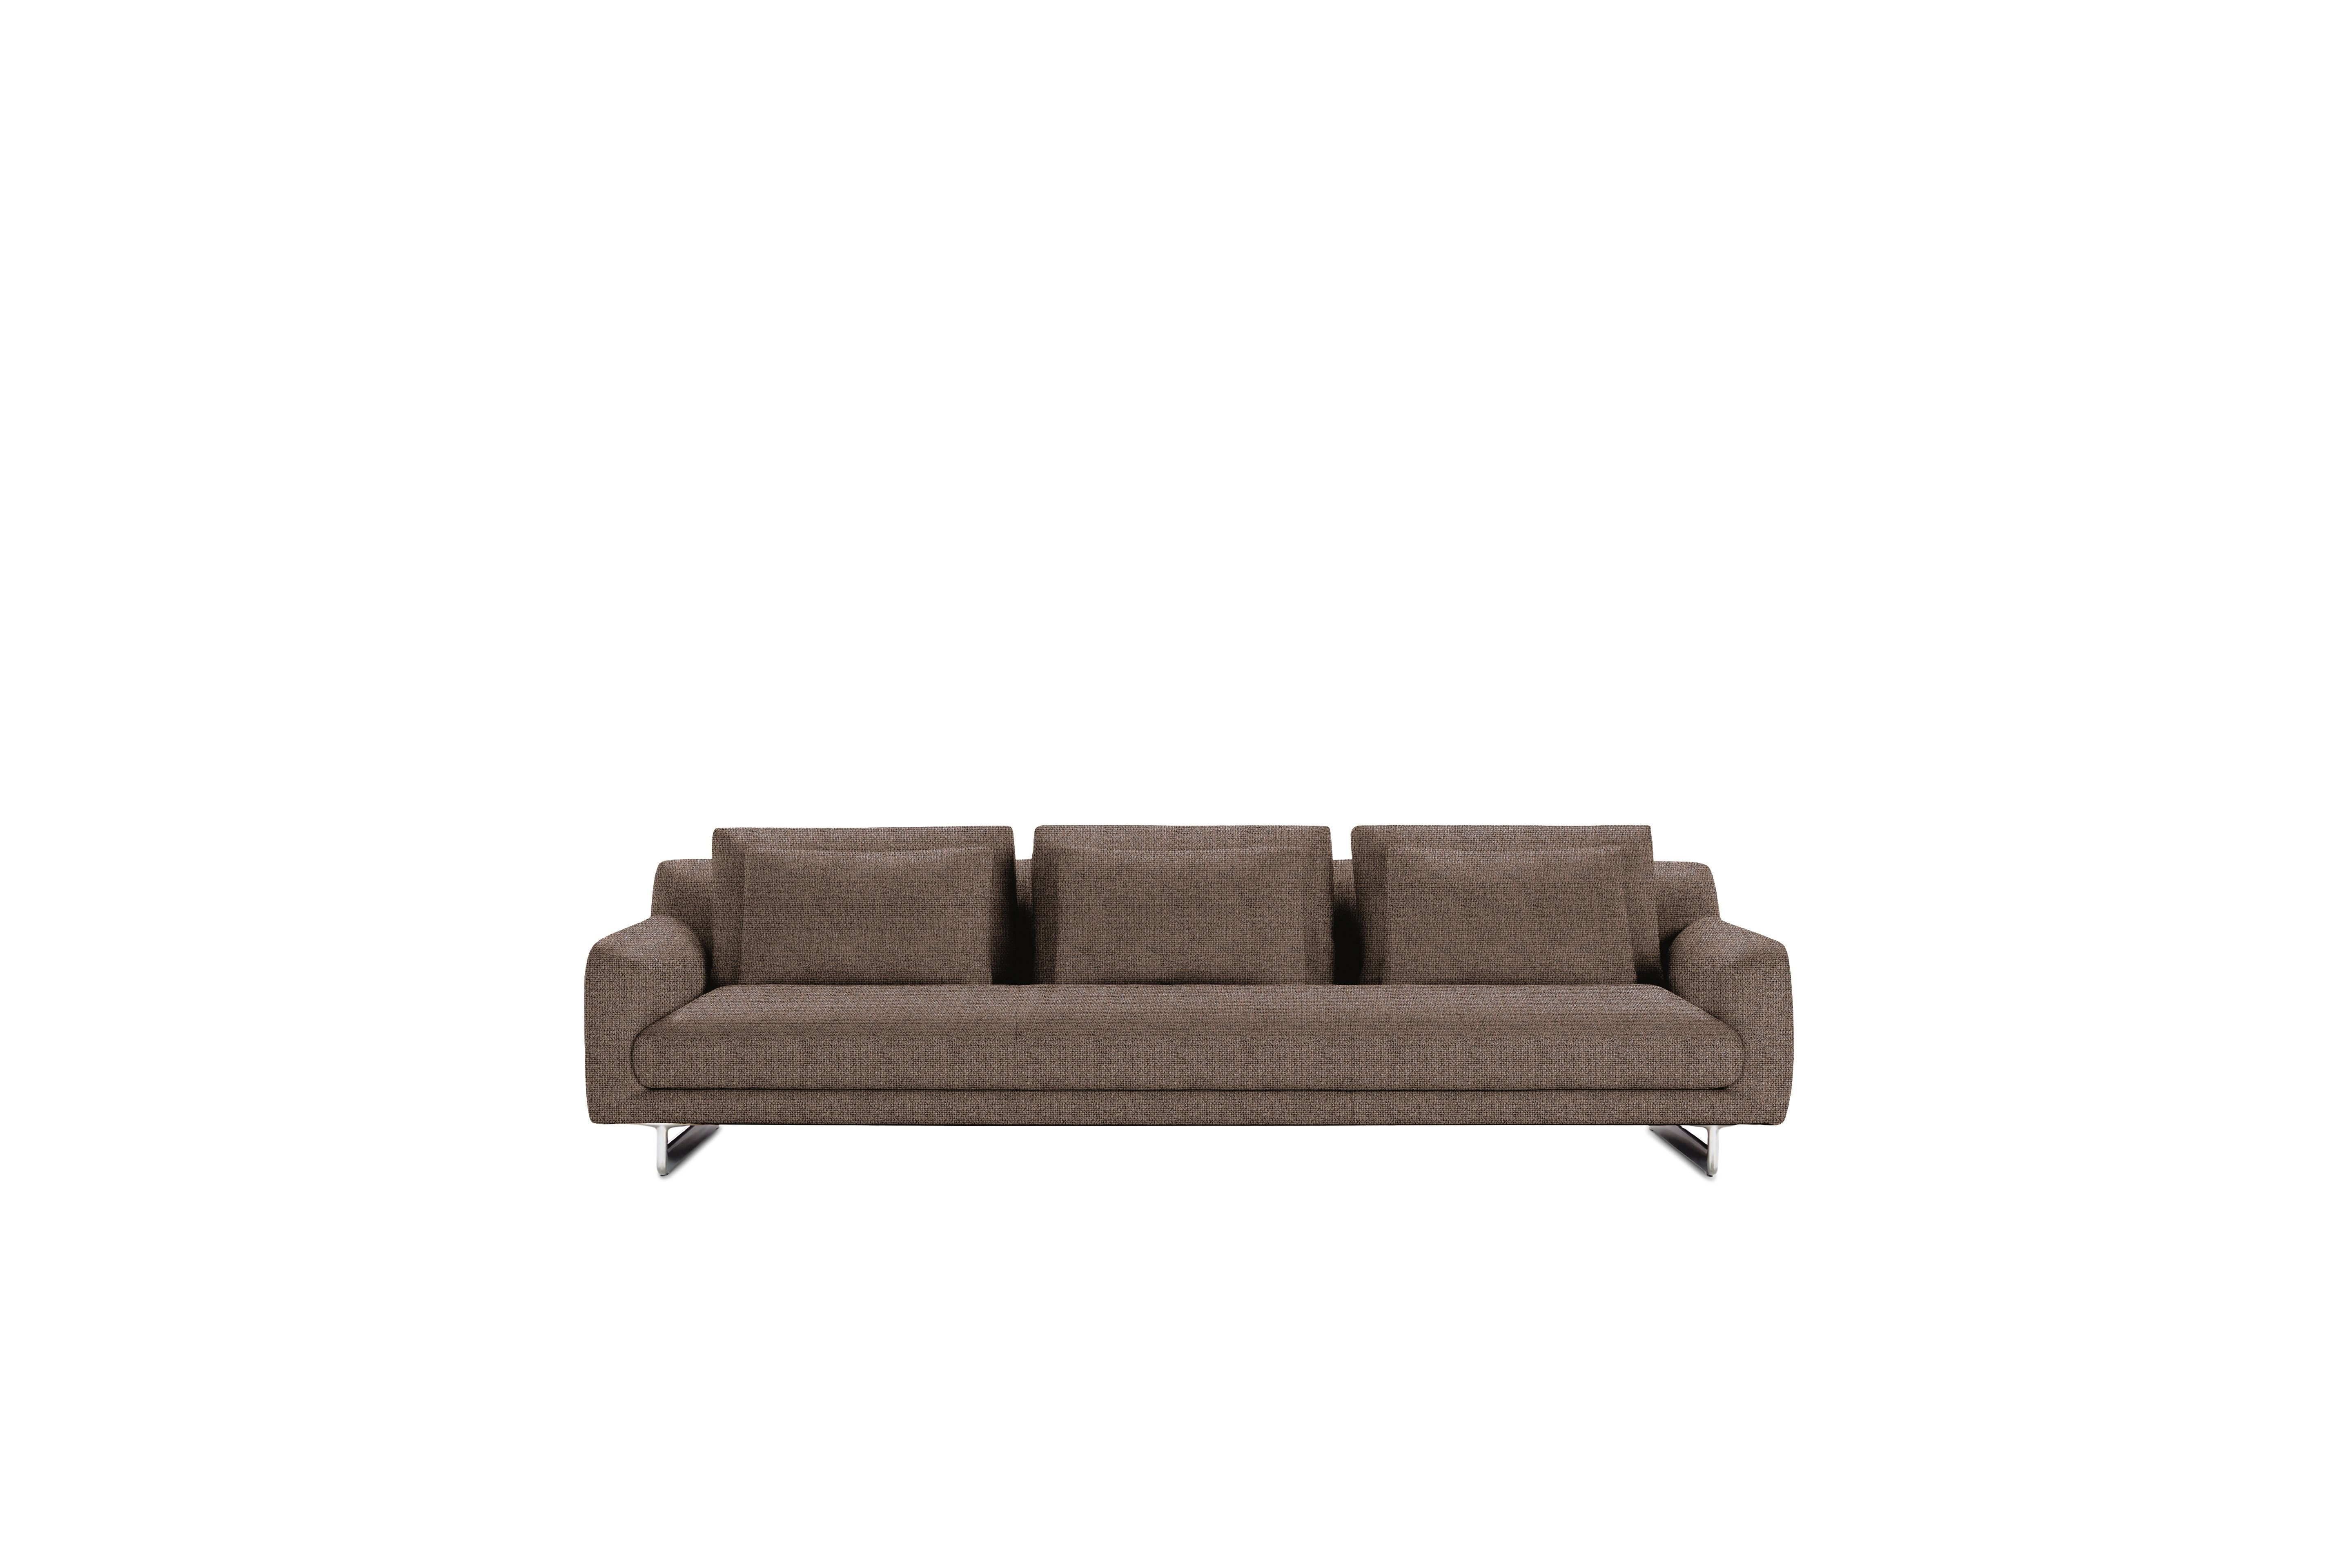 """Lecco Sofa, Brown, 110"""" by Design Within Reach"""